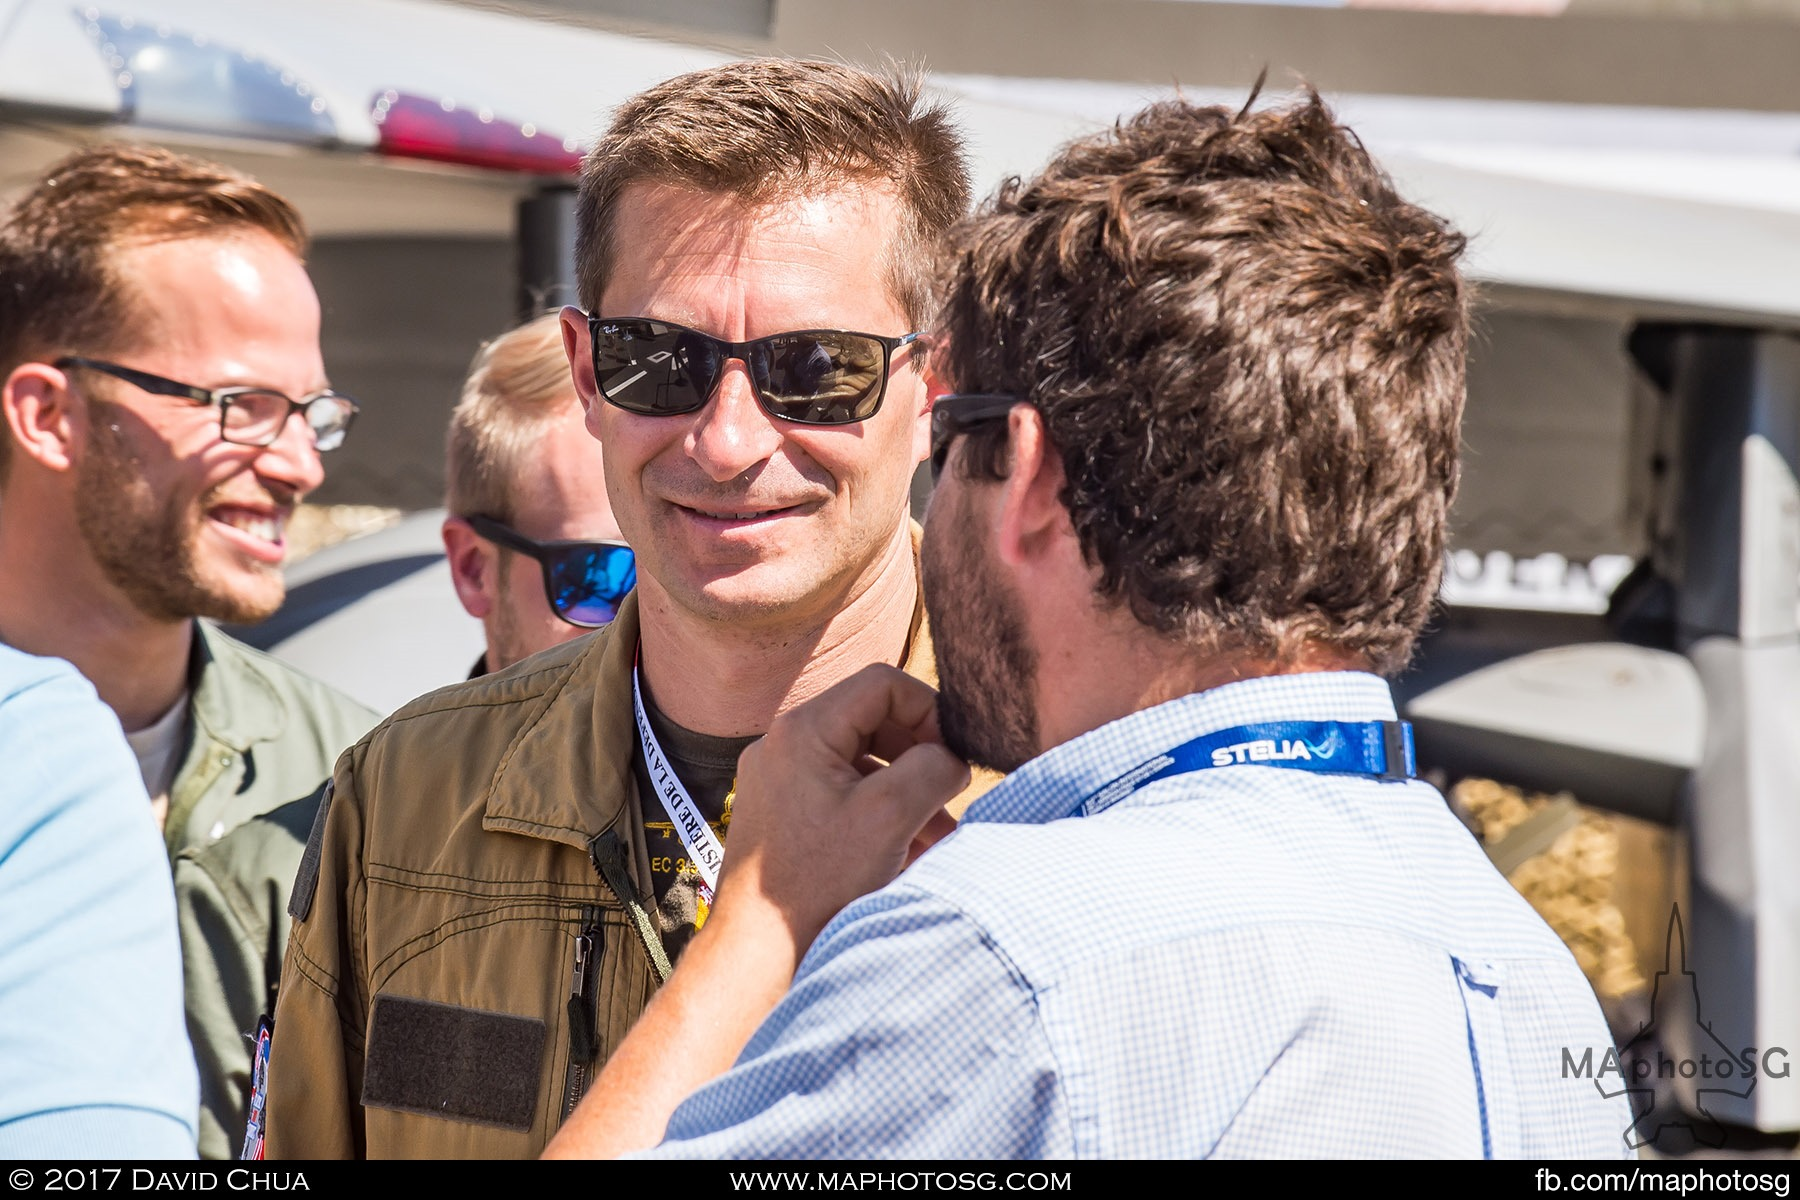 20. Pilot of the French Air Force Rafale interacting with visitors.